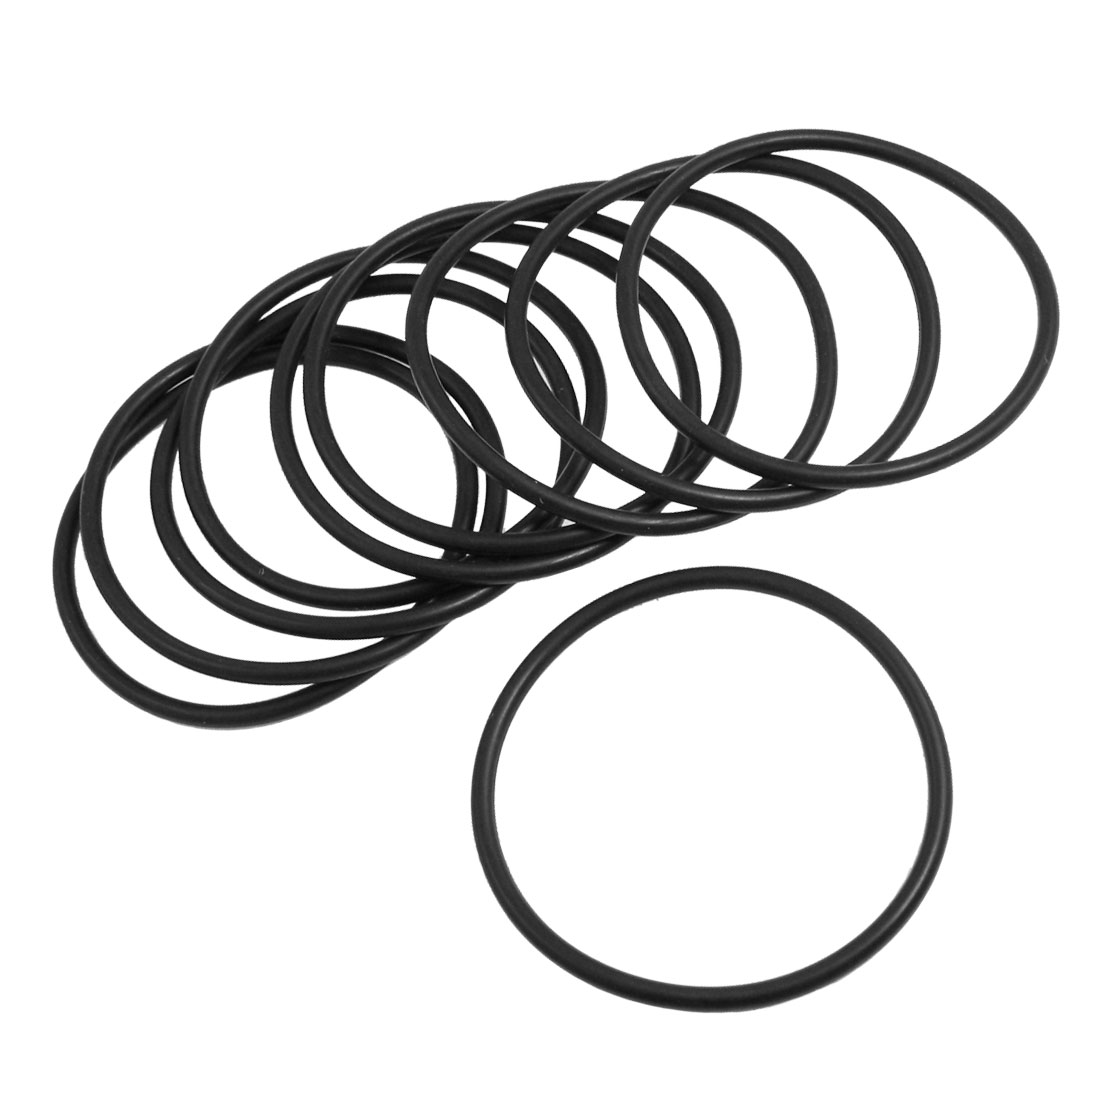 4mm x 78mm Black Nitrile Rubber Sealing O Ring Seal Washer Grommets 10 Pcs